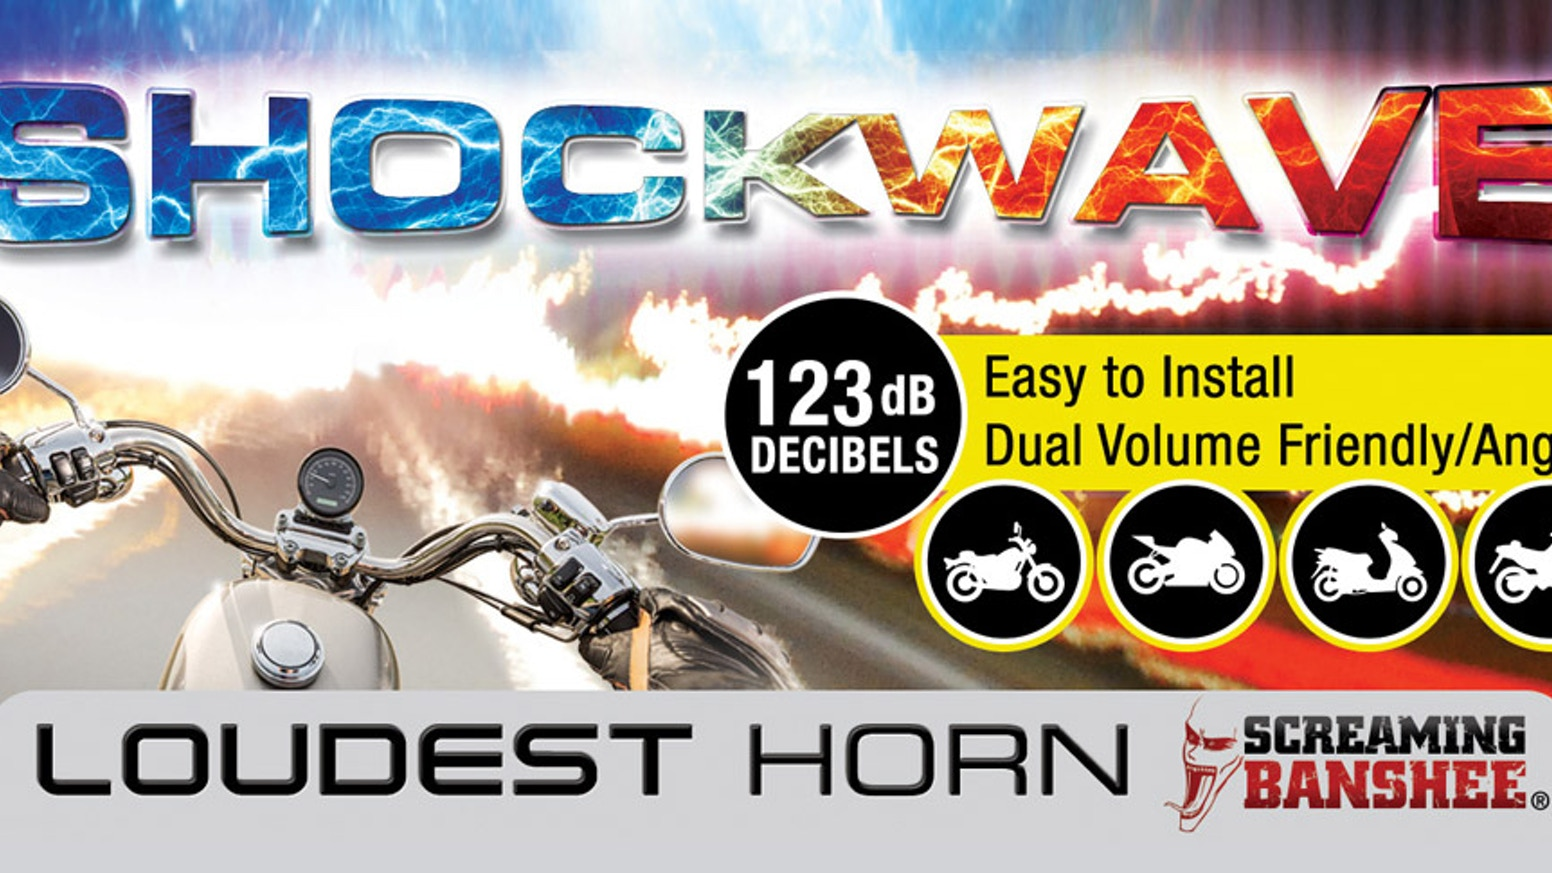 The Smallest, Loudest, Smartest Motorcycle & Scooter Horn Available. Dual volumes provide Friendly / Angry modes